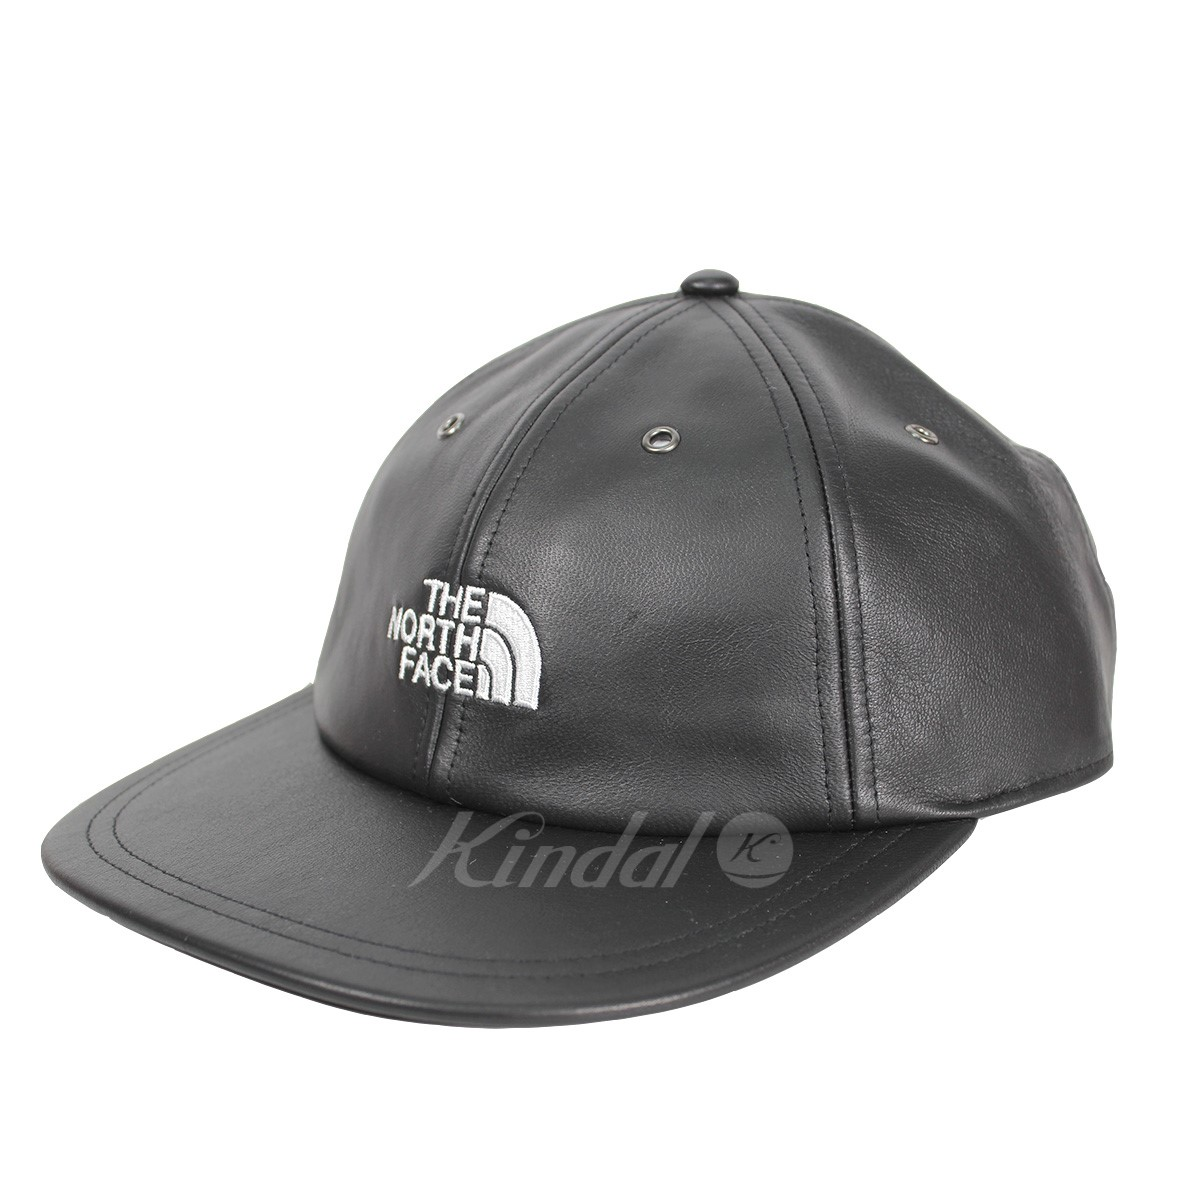 【中古】Supreme × THE NORTH FACE 18AW Leather 6-Panel Hat レザー6パネルキャップ 【送料無料】 【005929】 【KIND1550】